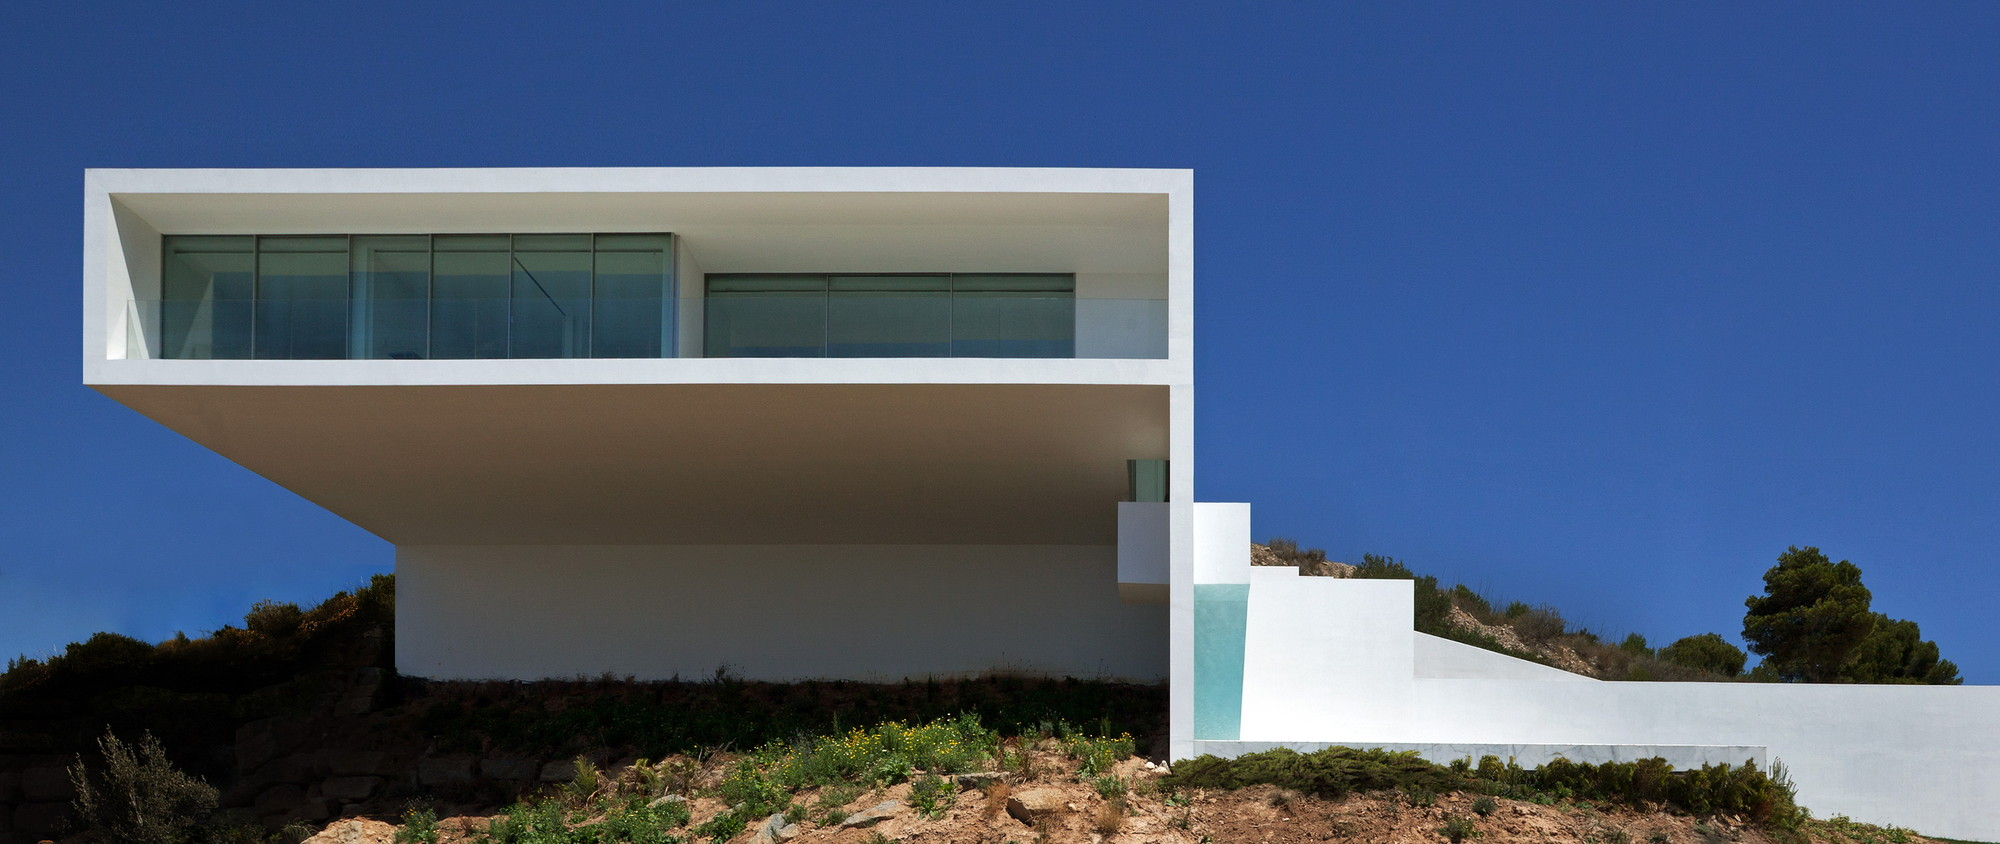 Gallery of house on the cliff fran silvestre arquitectos 3 - Fran silvestre arquitectos ...